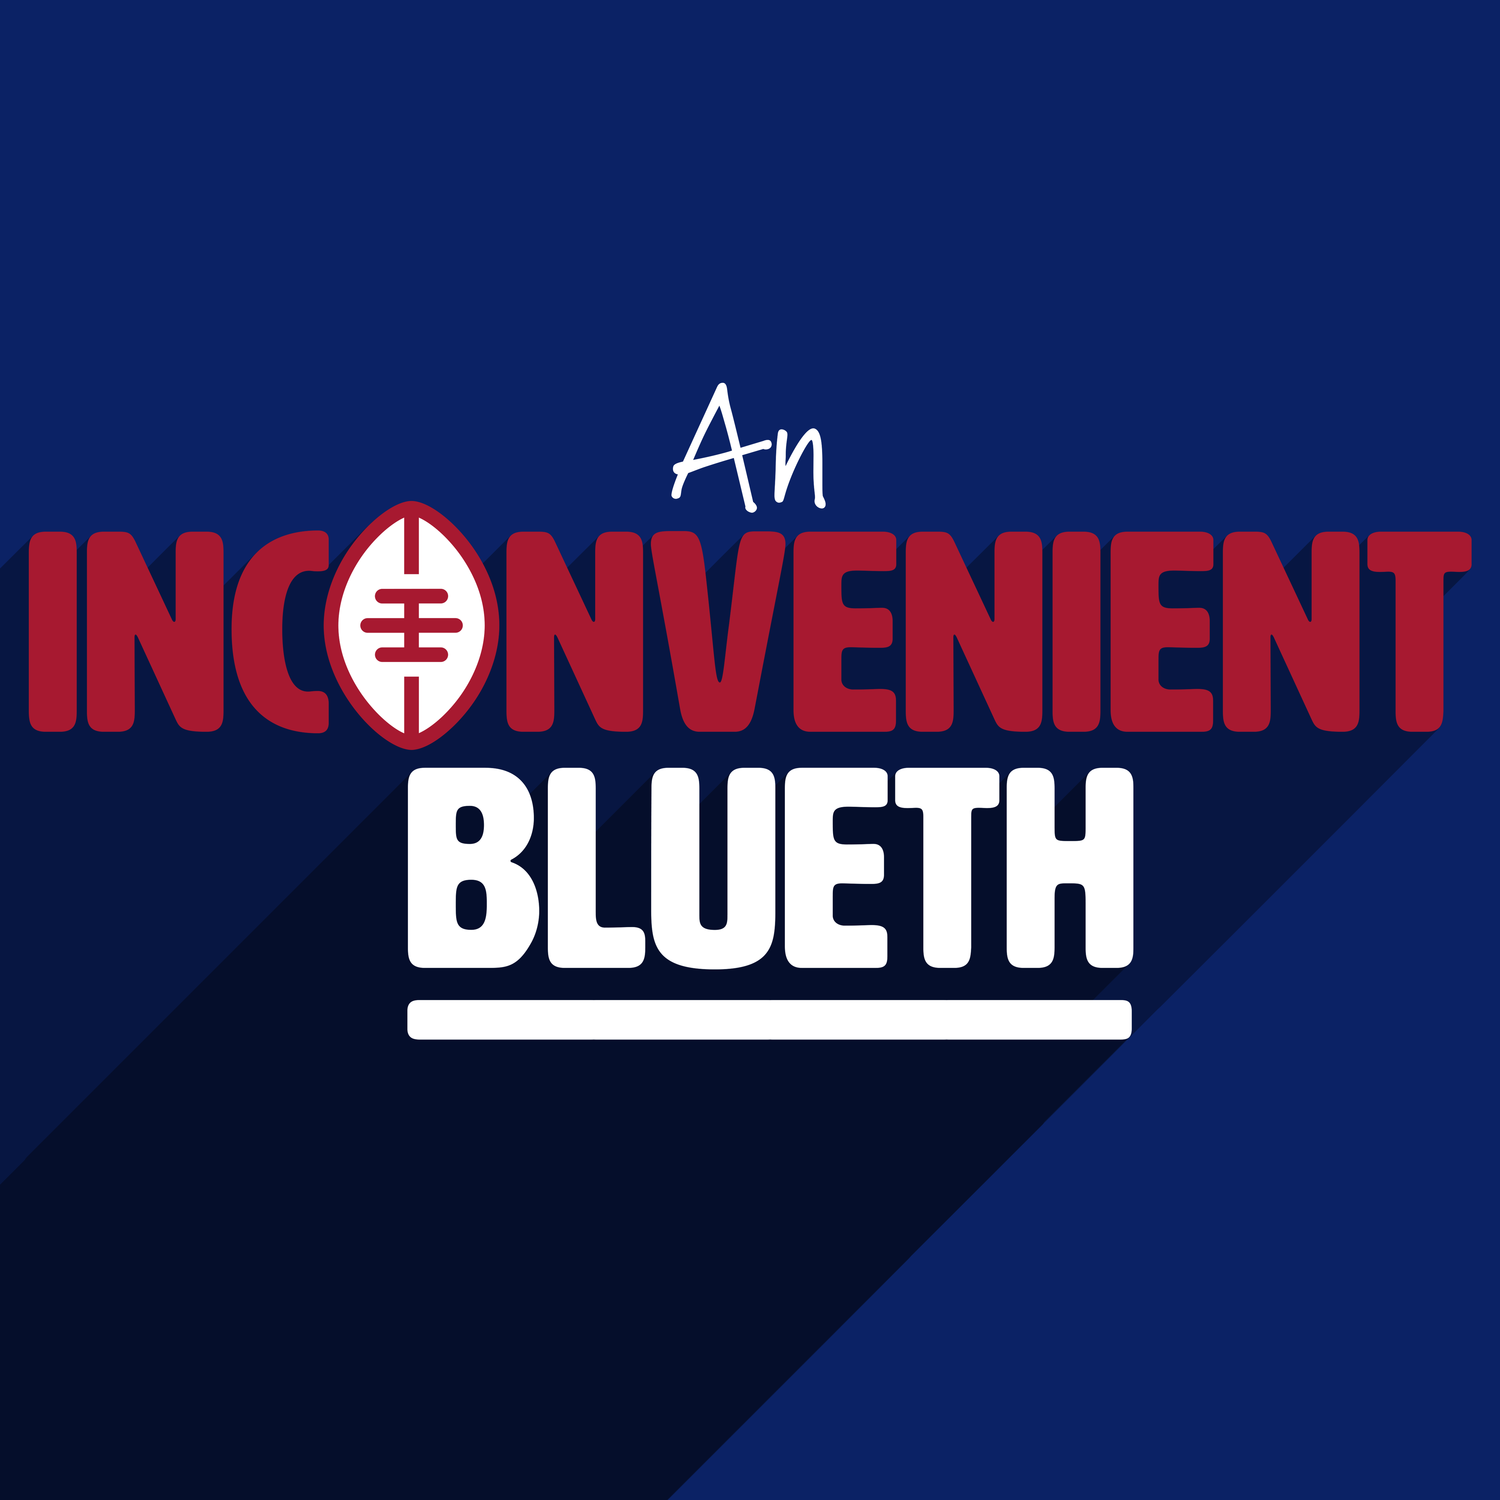 Back to the twenty downs I watched! — An Inconvenient Blueth